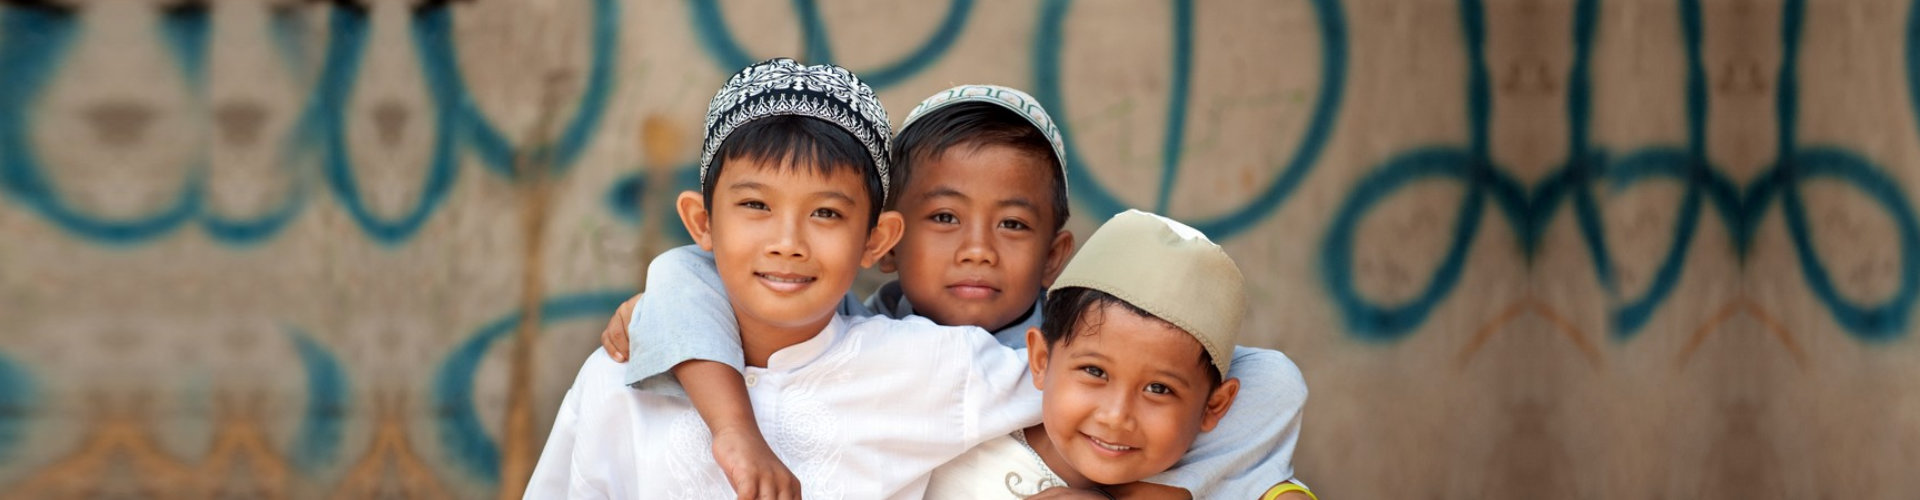 group of children are smiling